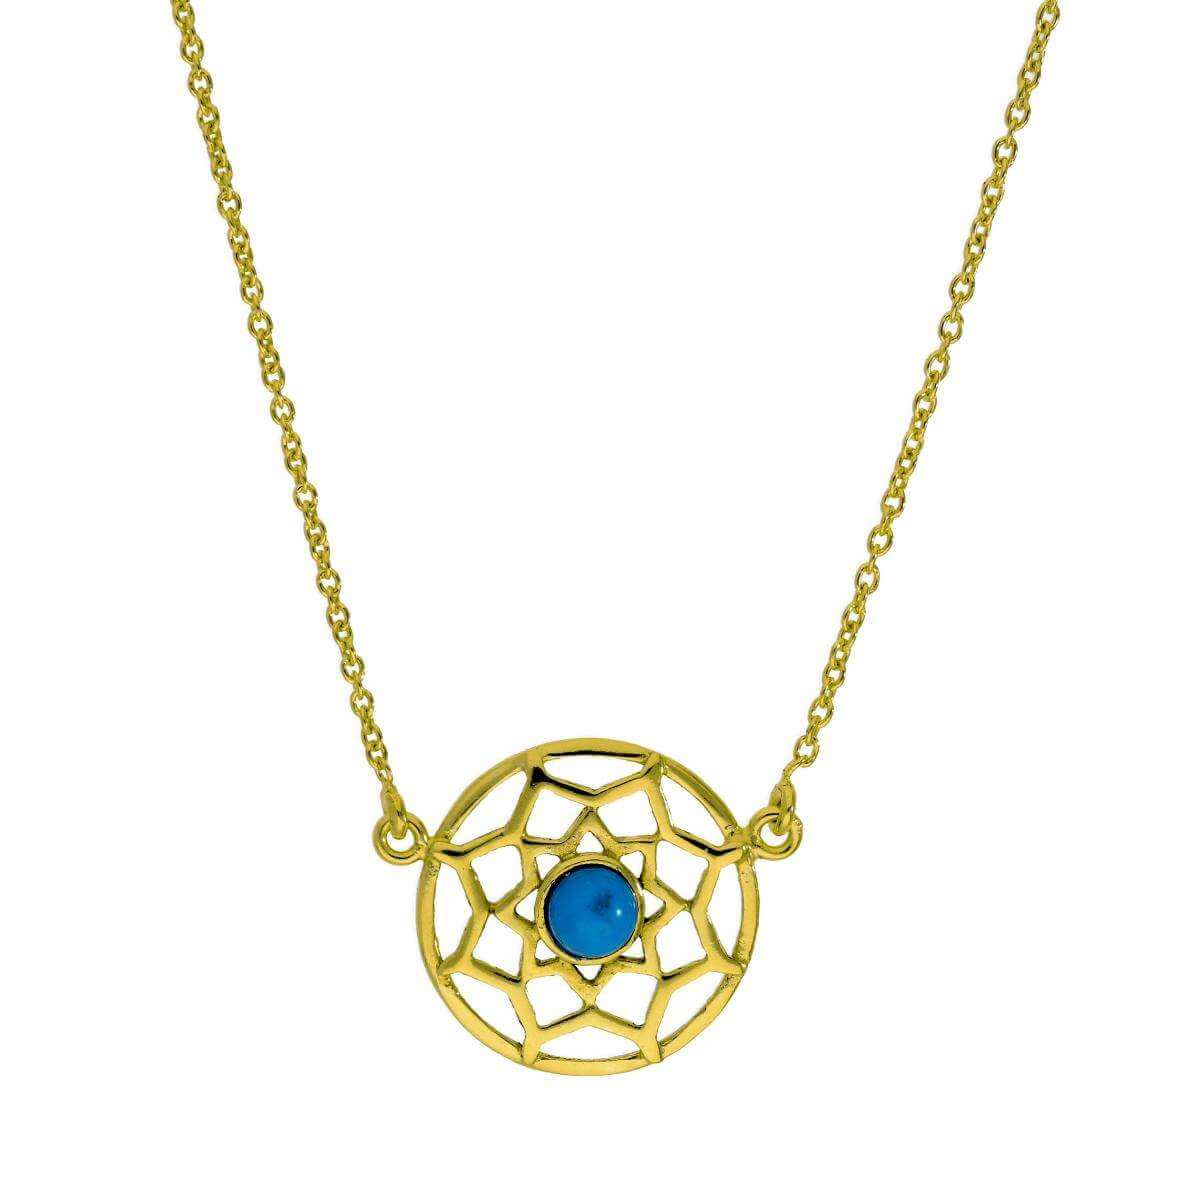 Gold Plated Sterling Silver & Blue Enamel Dreamcatcher Necklace w 18 Inch Chain